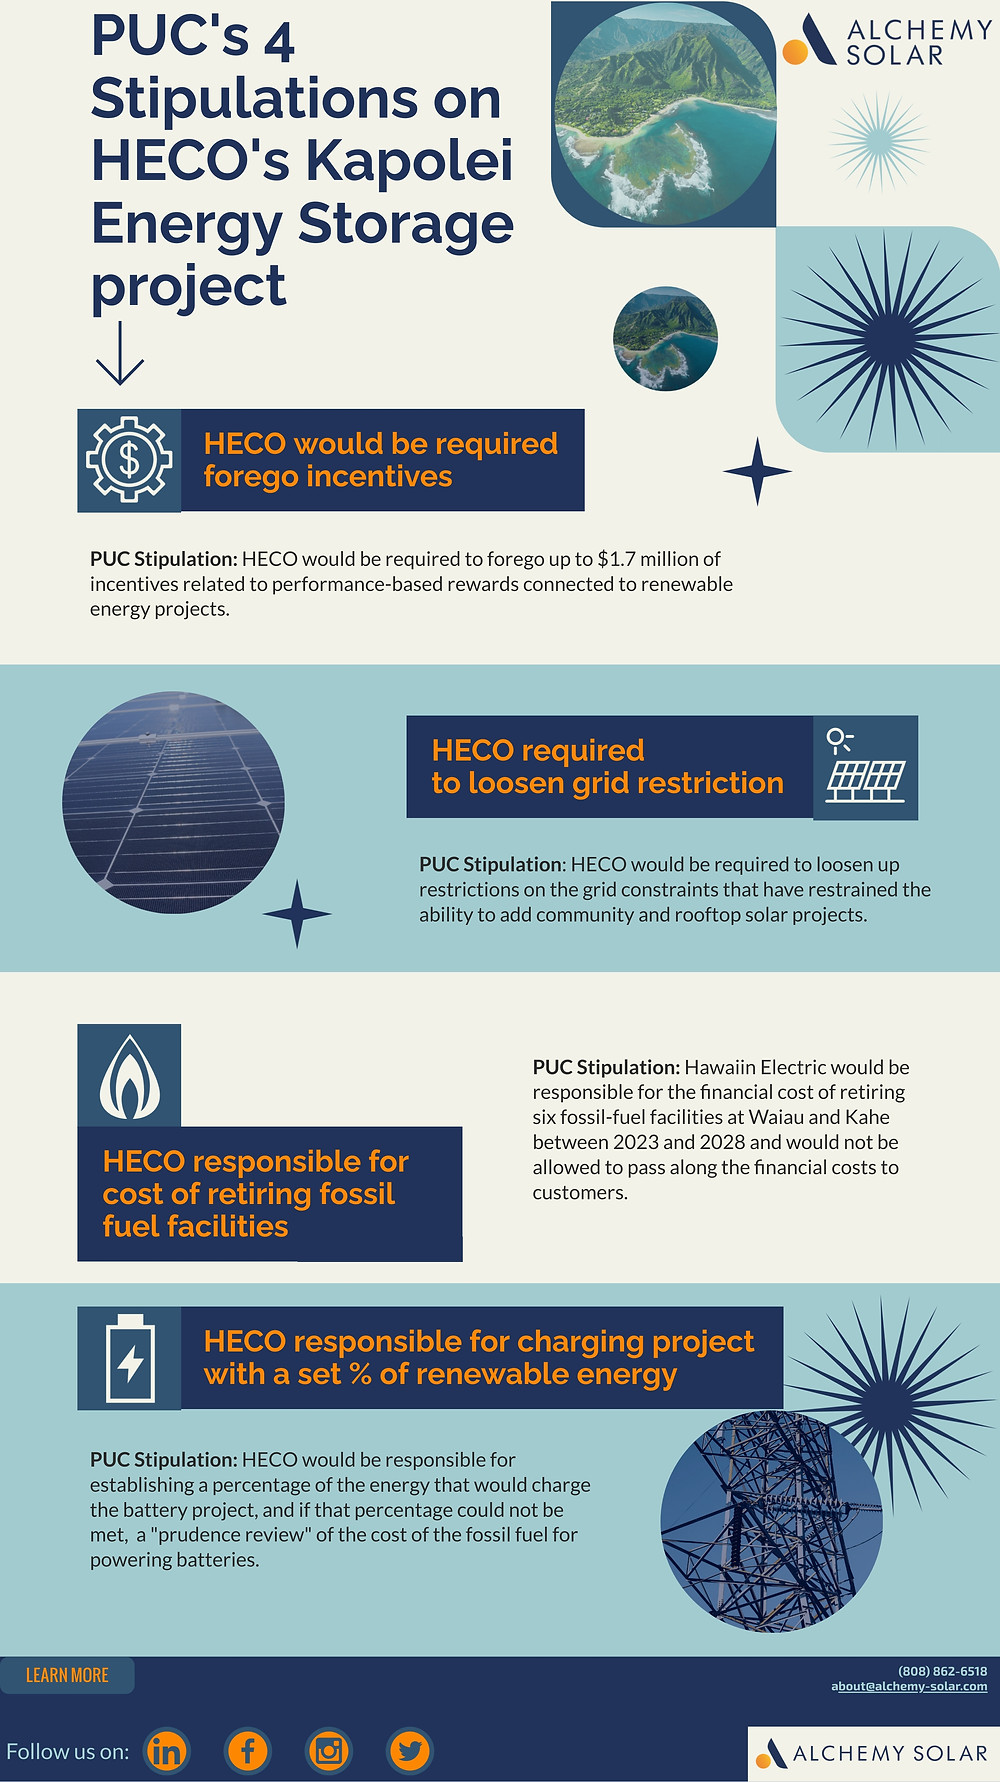 What the PUC requested HECO do to complete the Kapolei Energy Storage Project